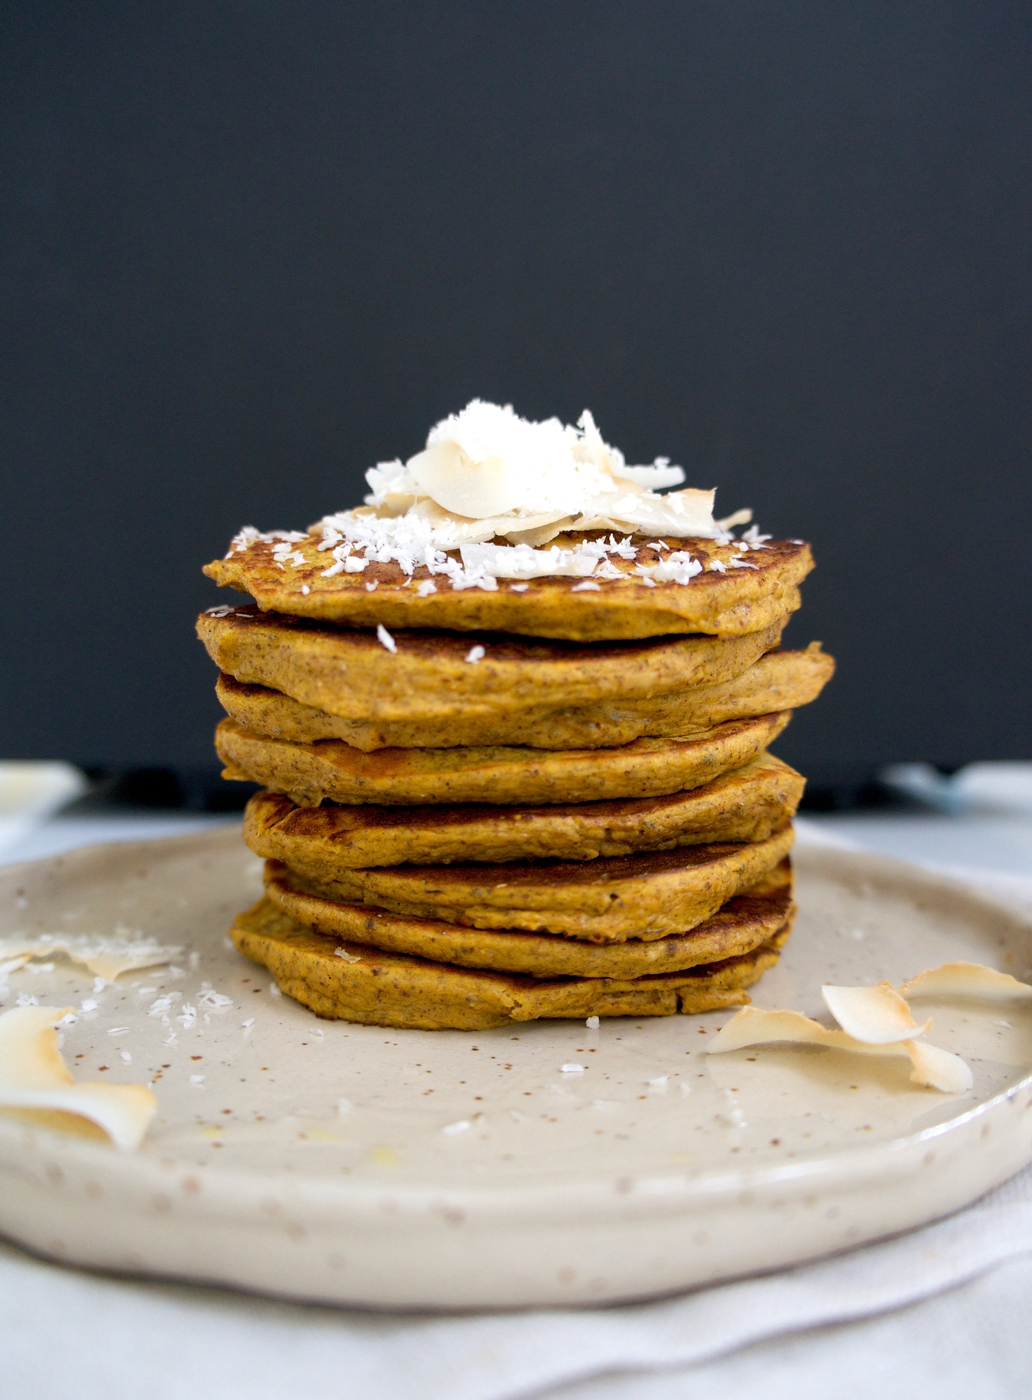 SWEET POTATO PANCAKES – BATAATTIPANNARIT